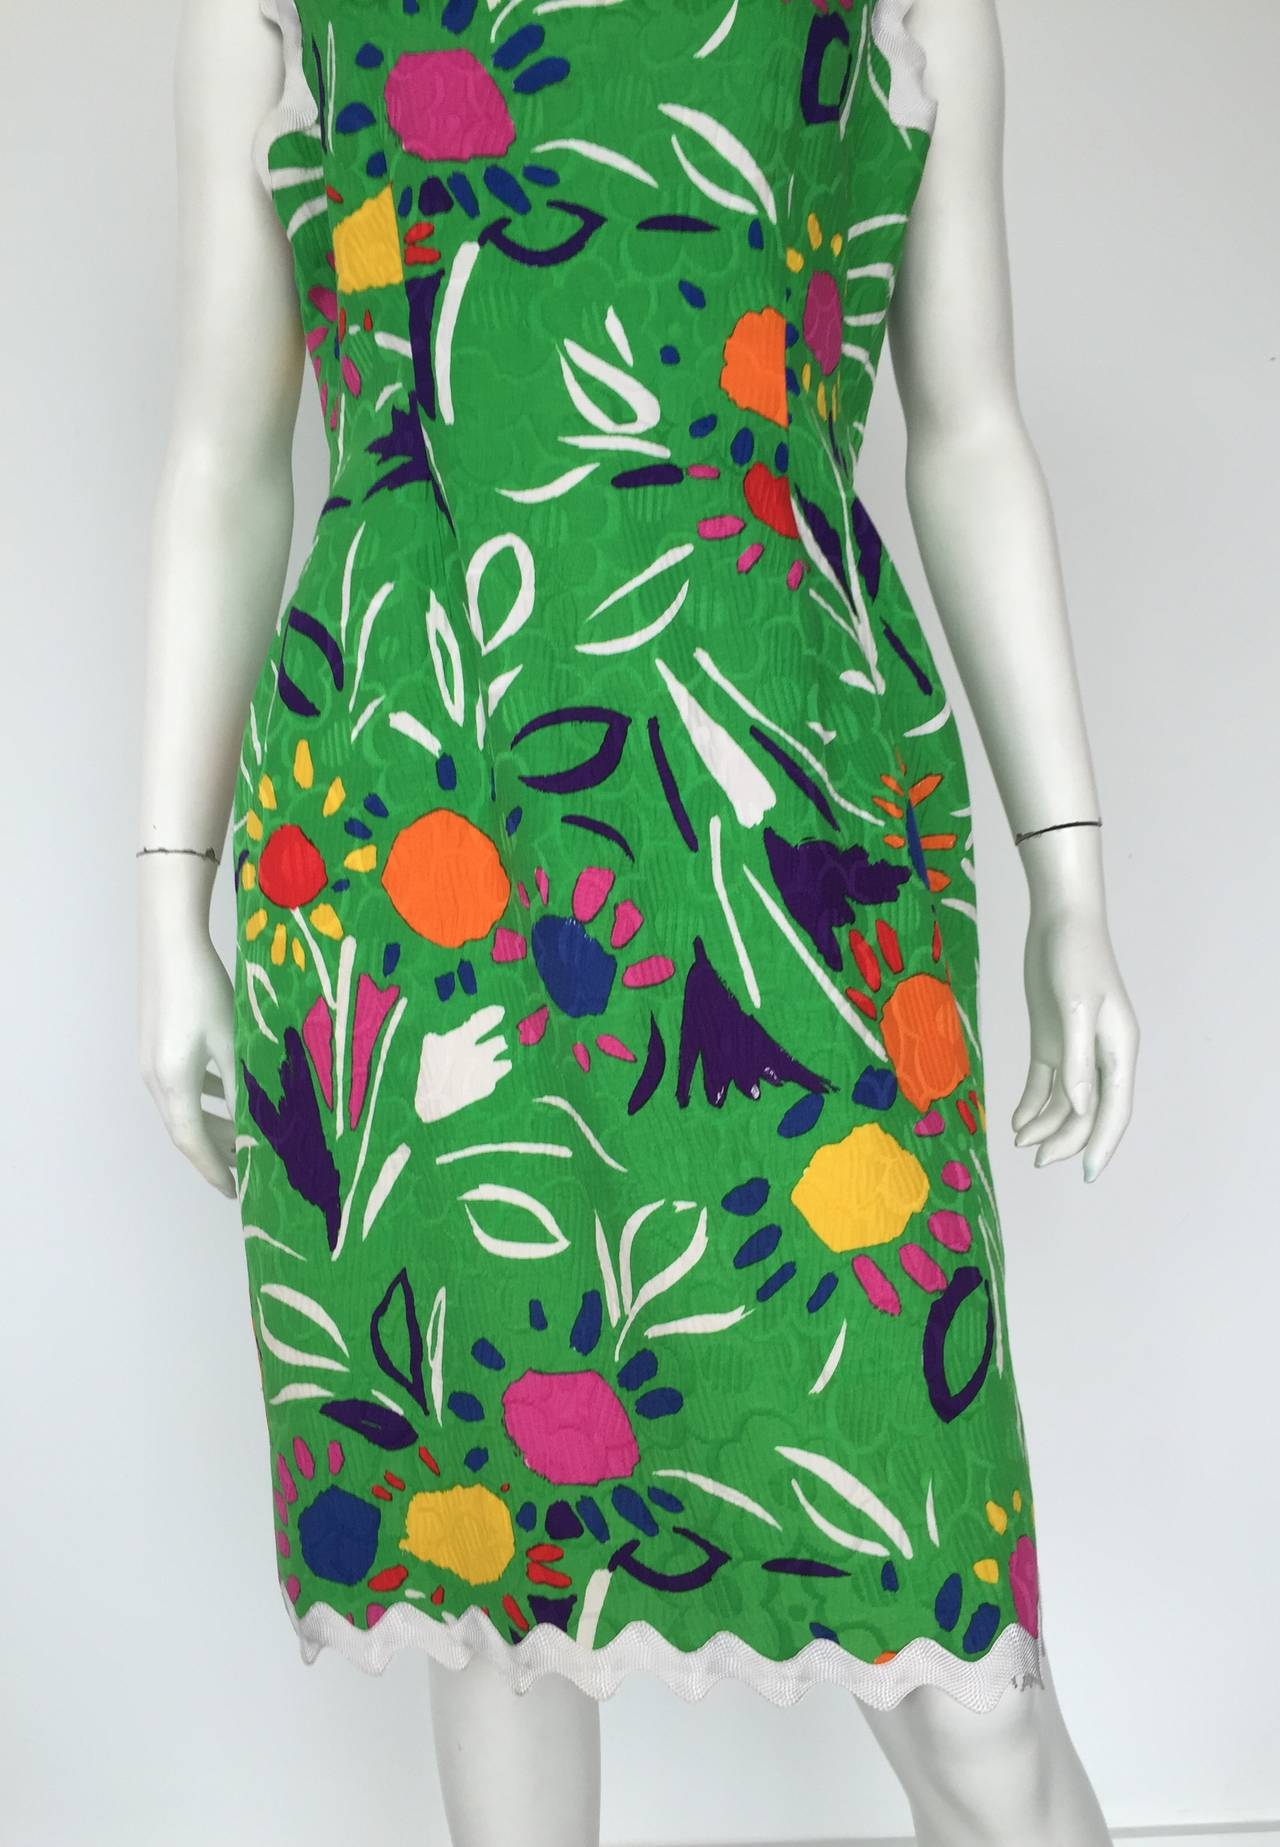 Blue Bill Blass Sleeveless Cotton Dress Size 10. For Sale